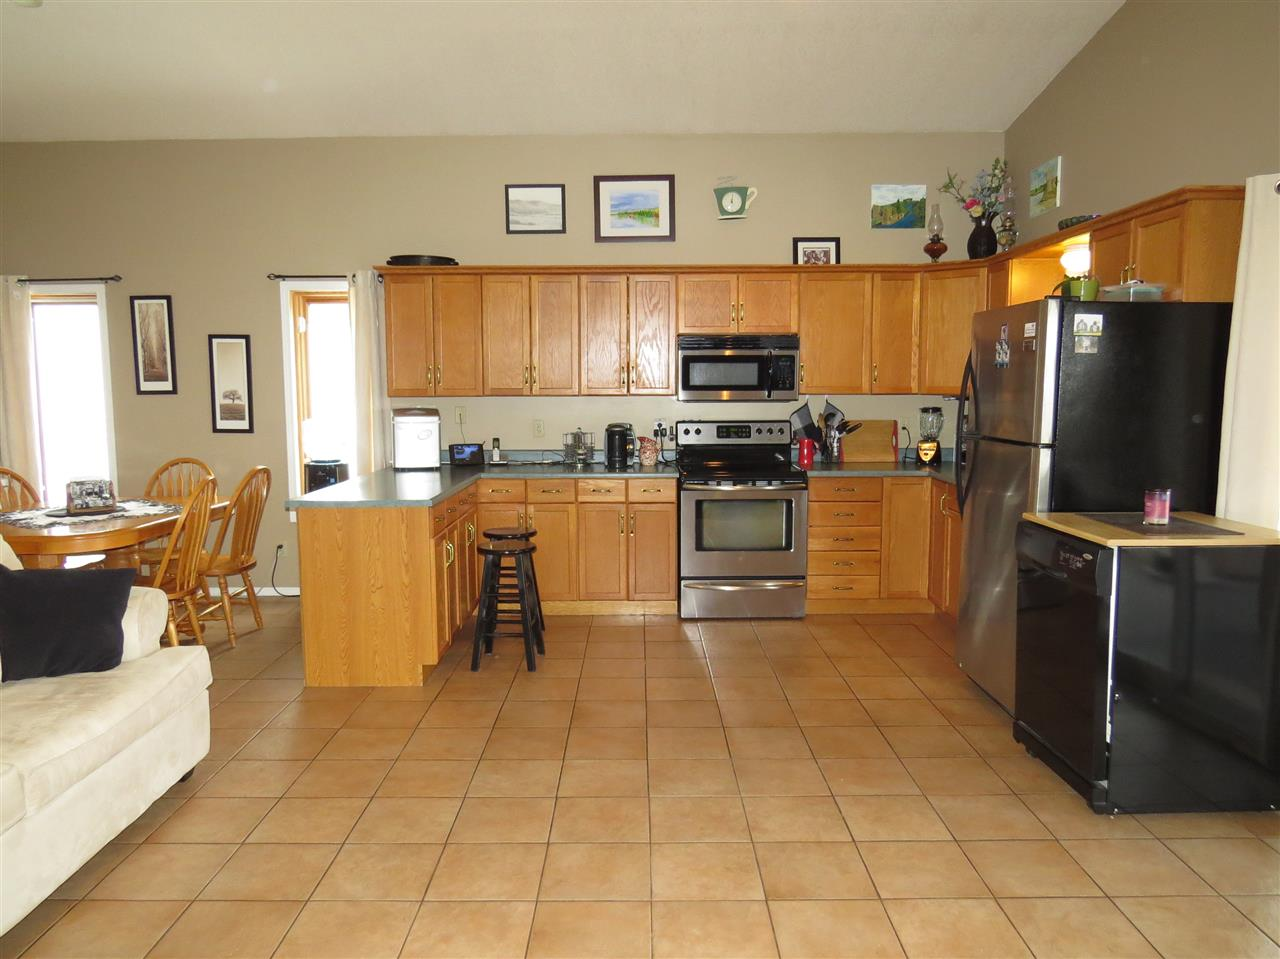 Photo 10: 14 RR 101 Twp 430A: Rural Flagstaff County House for sale : MLS® # E4049046